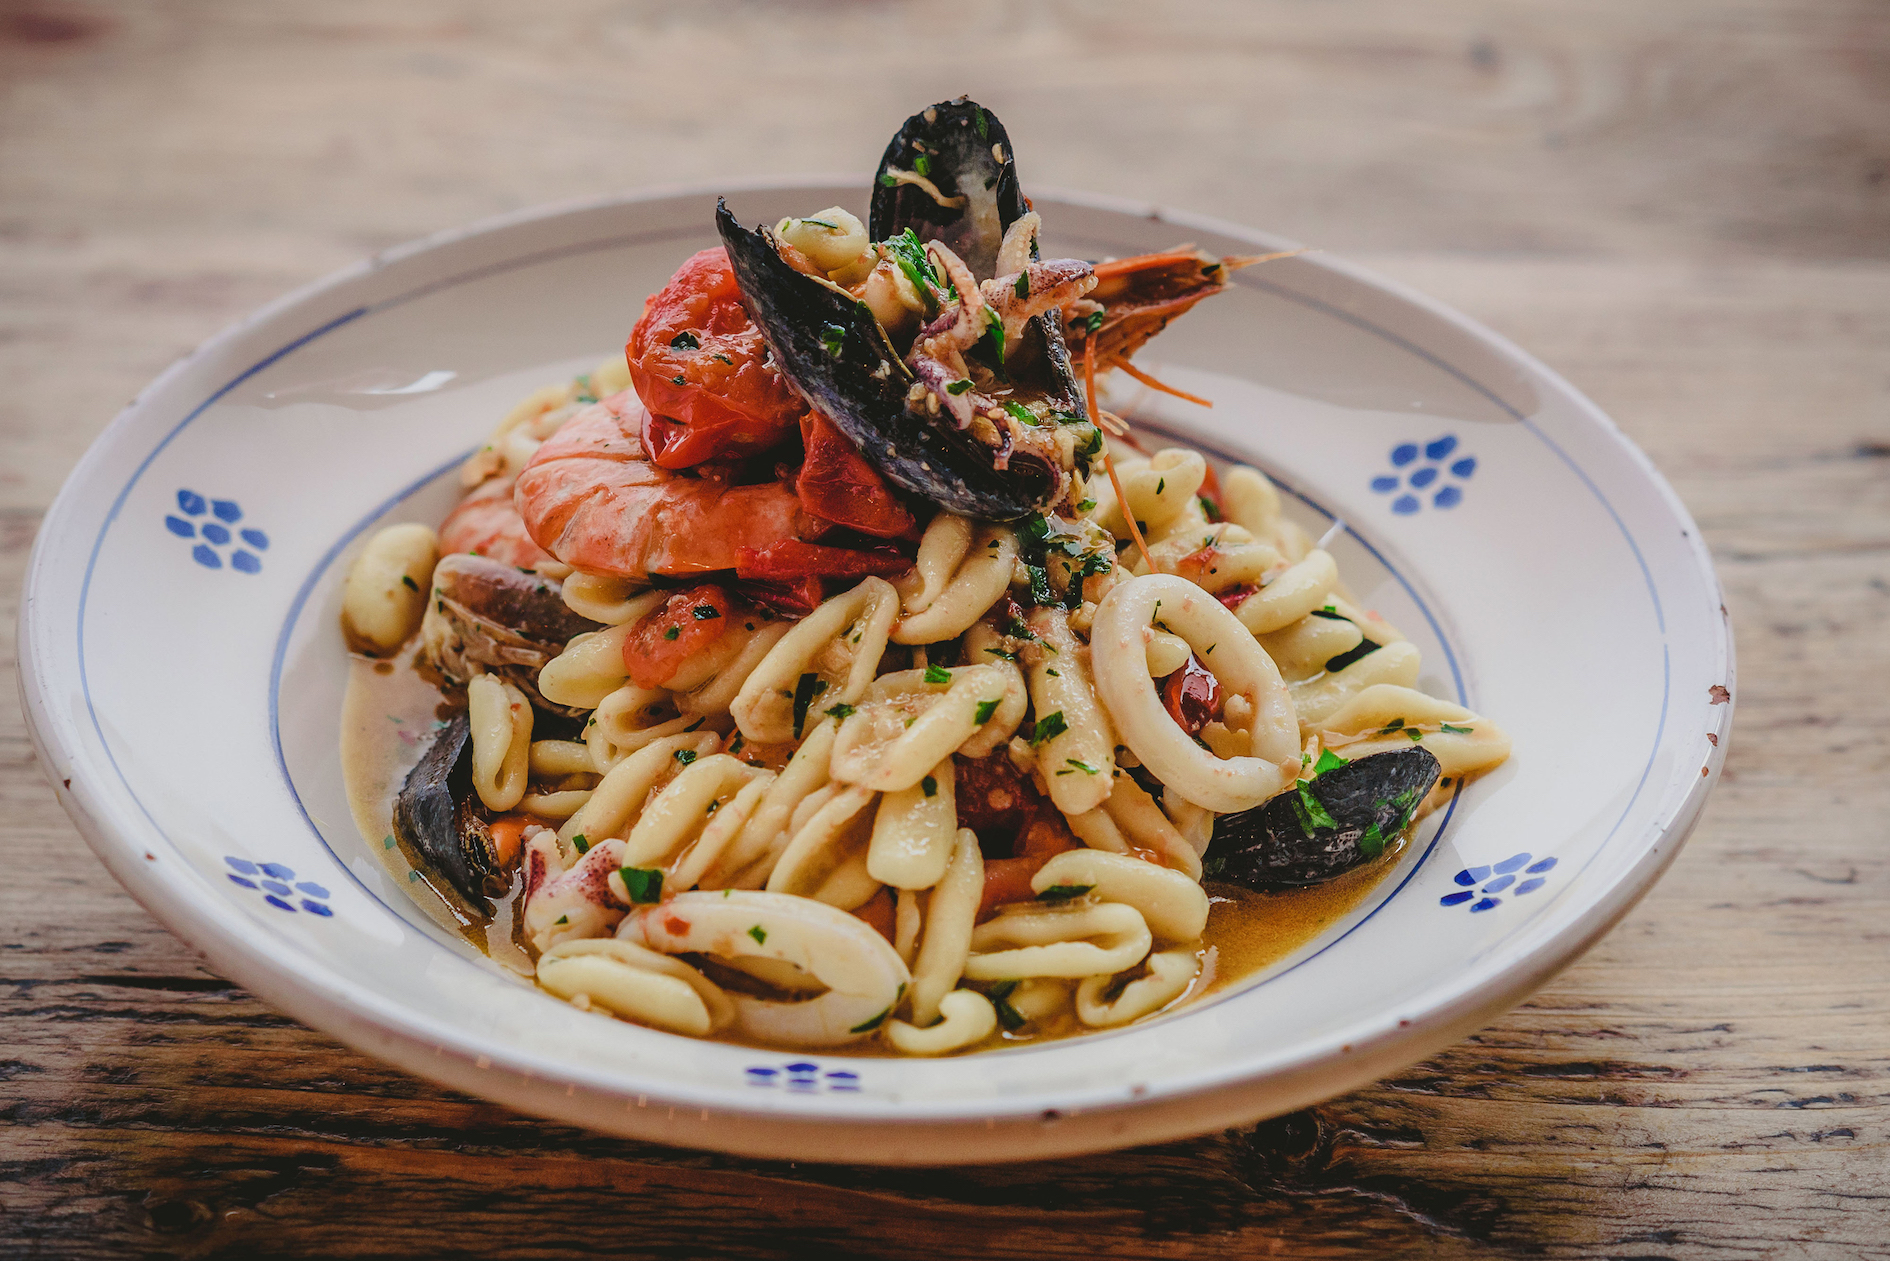 Italian Restaurants We Want To Go To - Sugo Pasta Kitchen - Humphrey Munson Blog